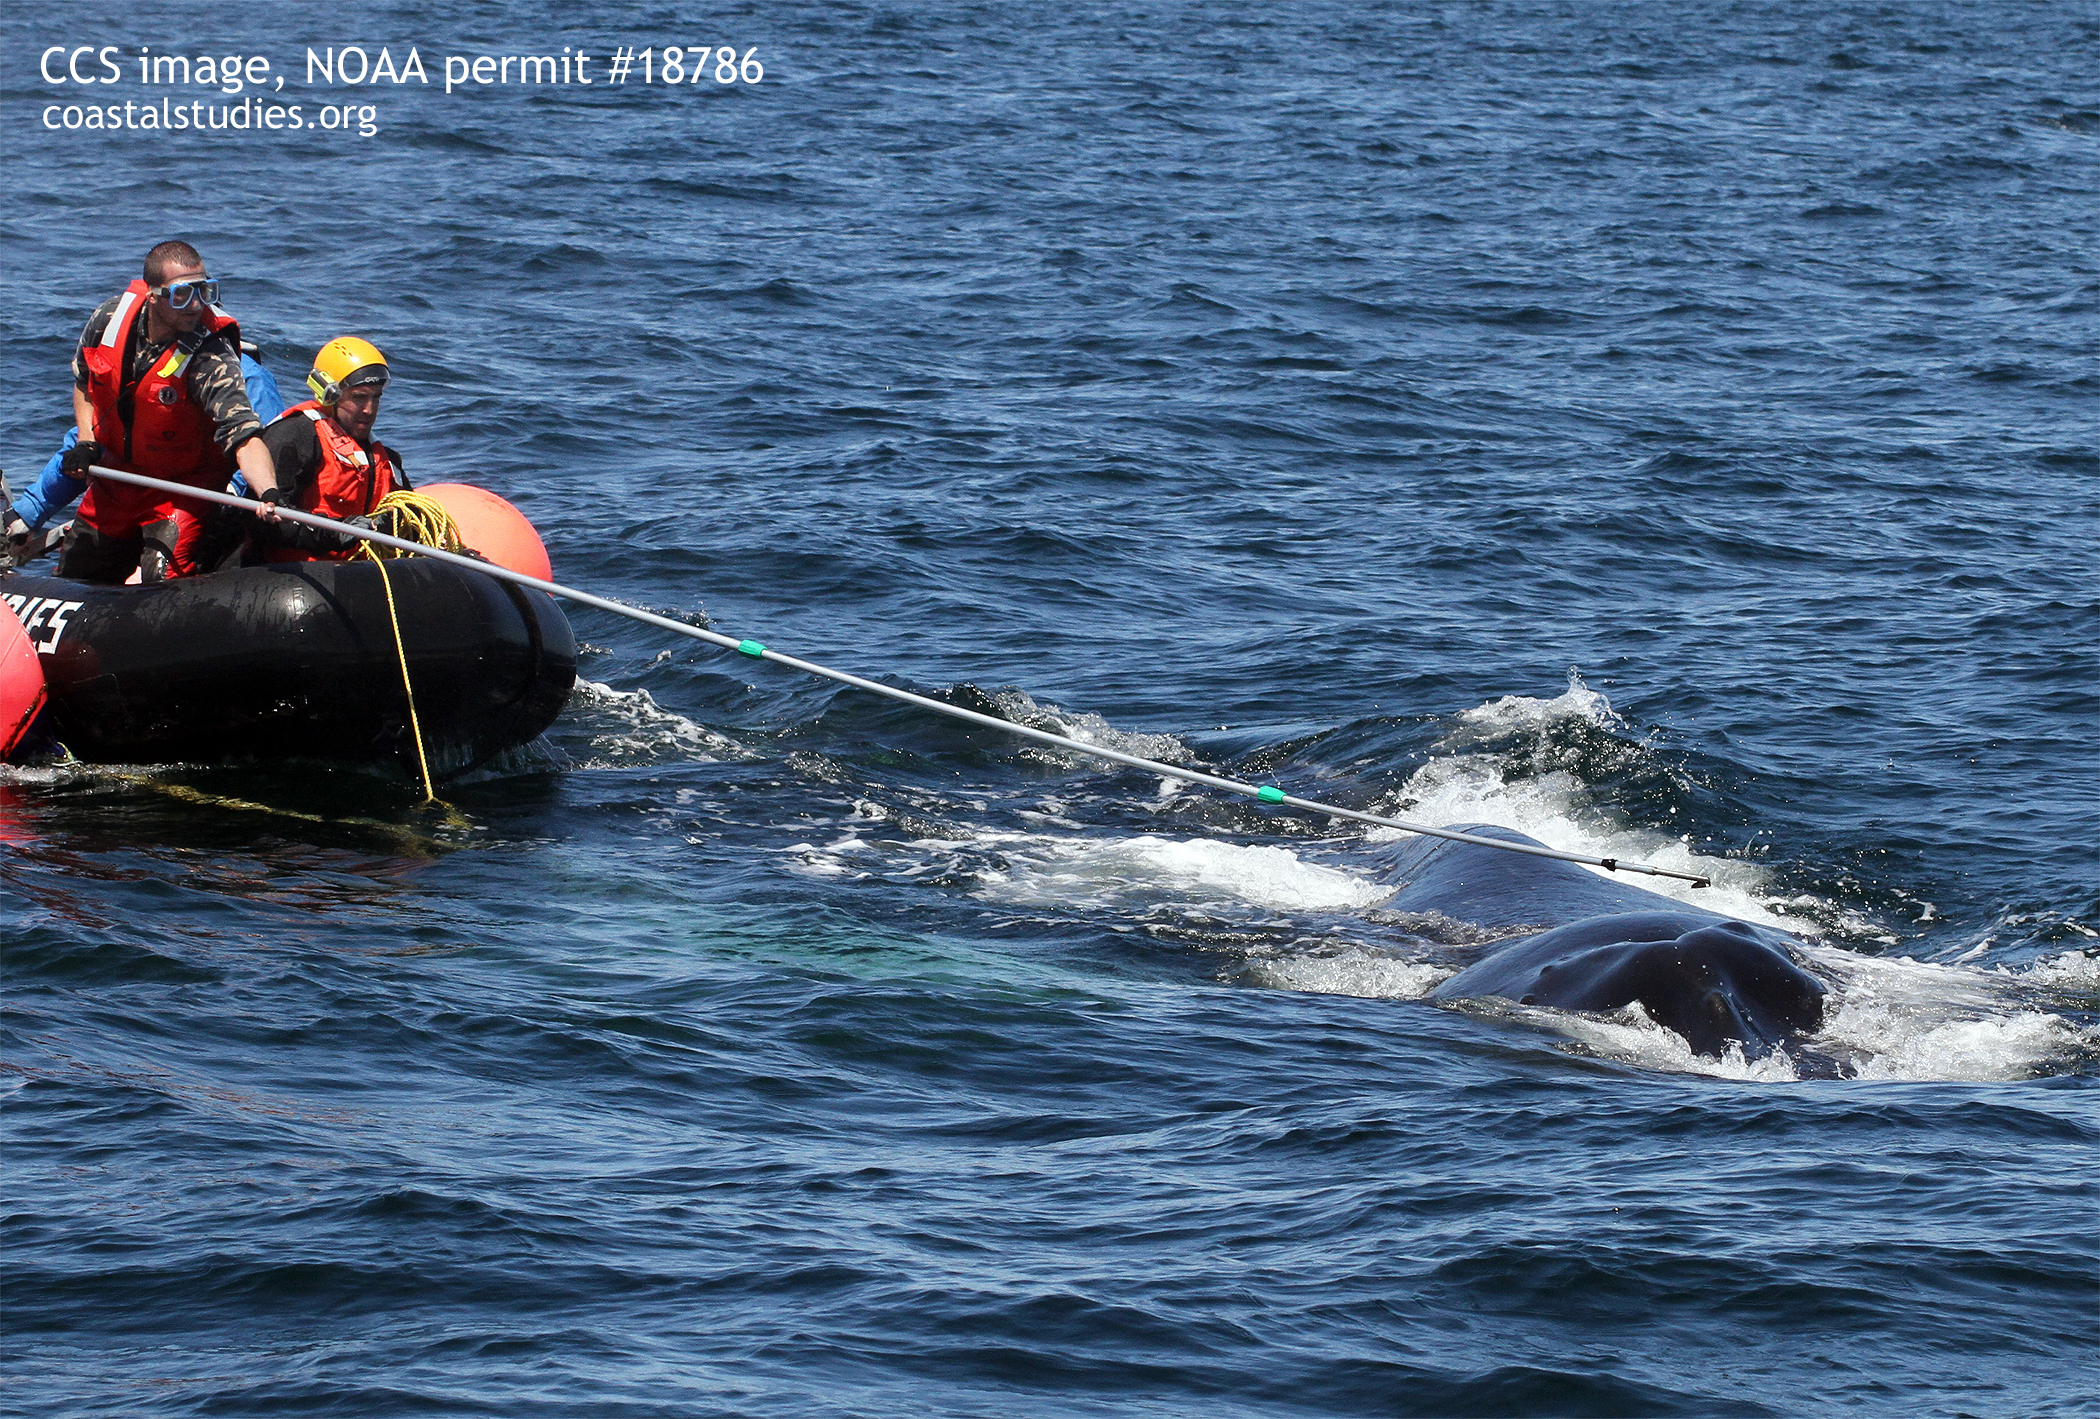 "a Marine animal entanglement response team (maer) working to disentangle the humpback whale ""foggy"" off the coast of gloucester, massachusetts, on may 18, 2016 (ccs image, noaa permit #18786)."